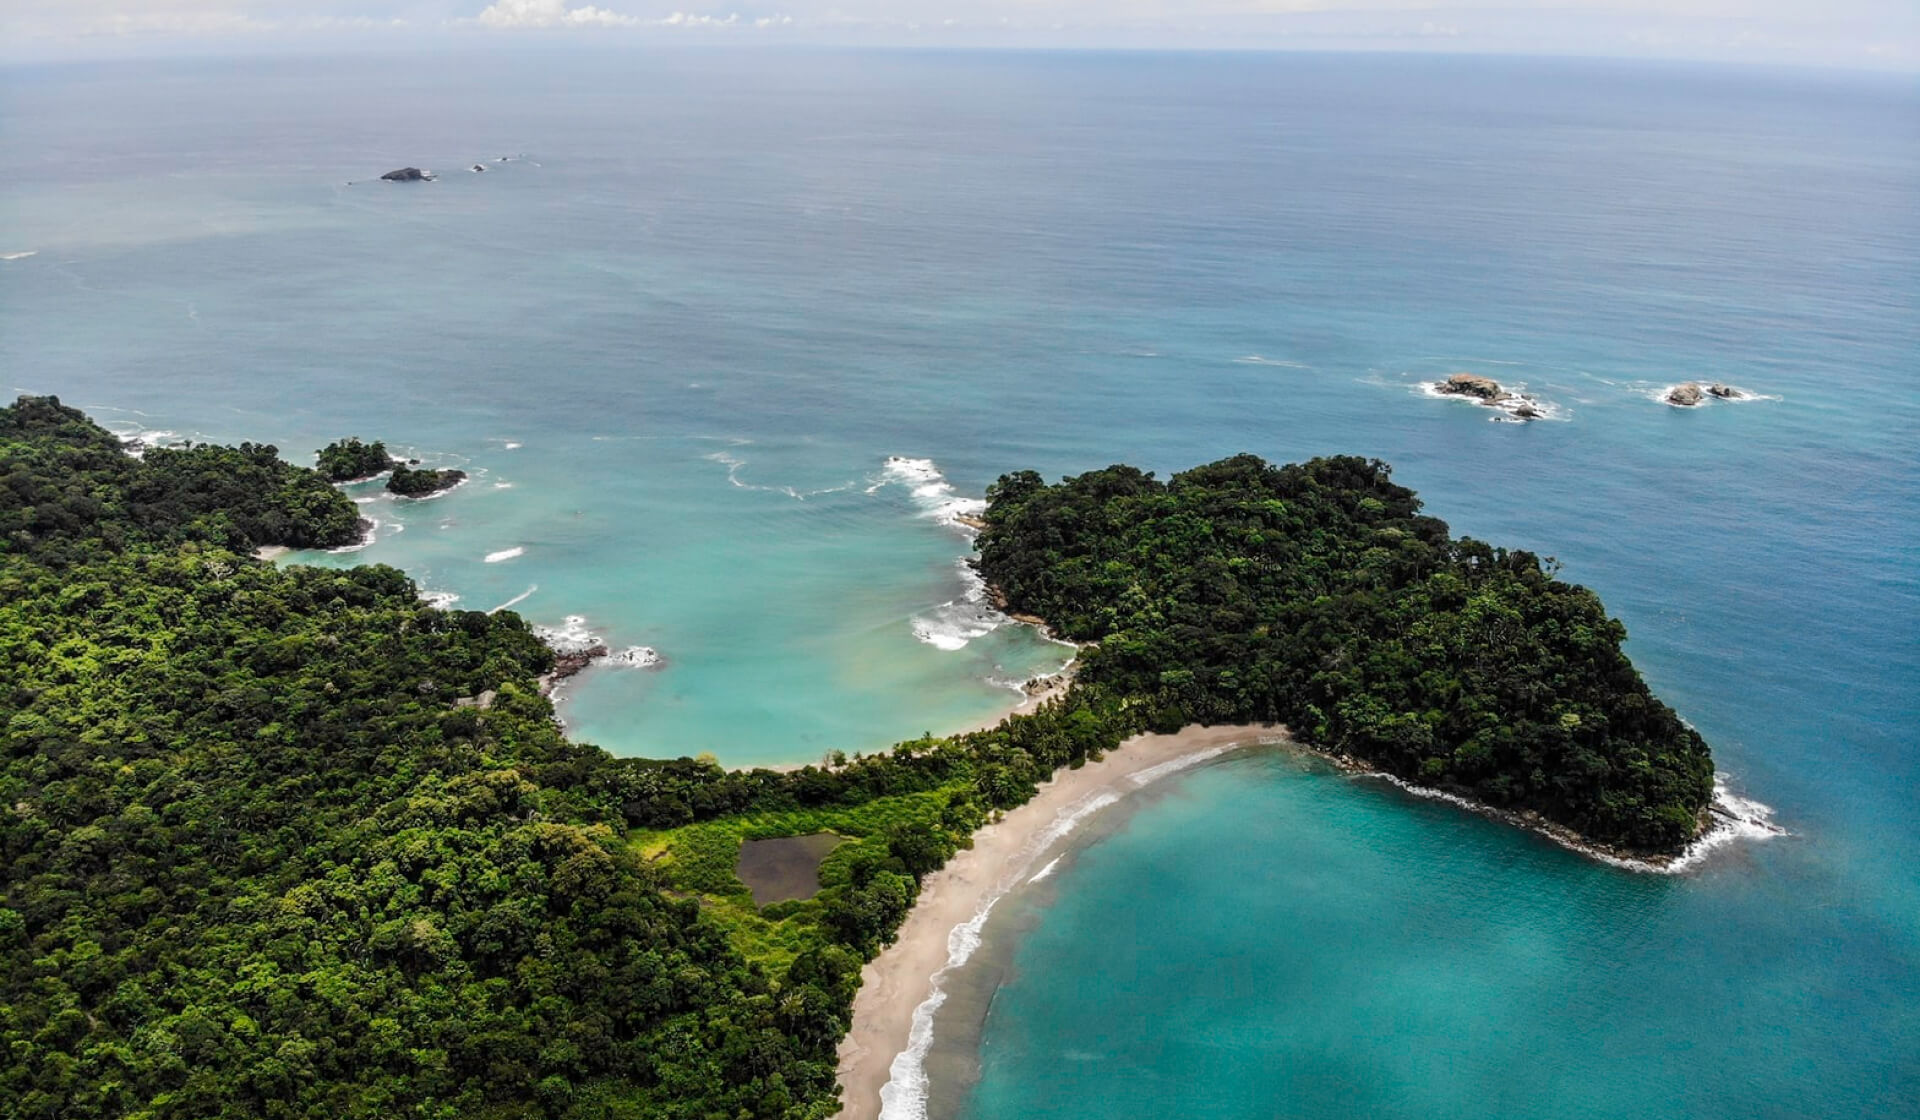 Aerial view of a stunning beach and jungle landscape in Manuel Antonio, Costa Rica